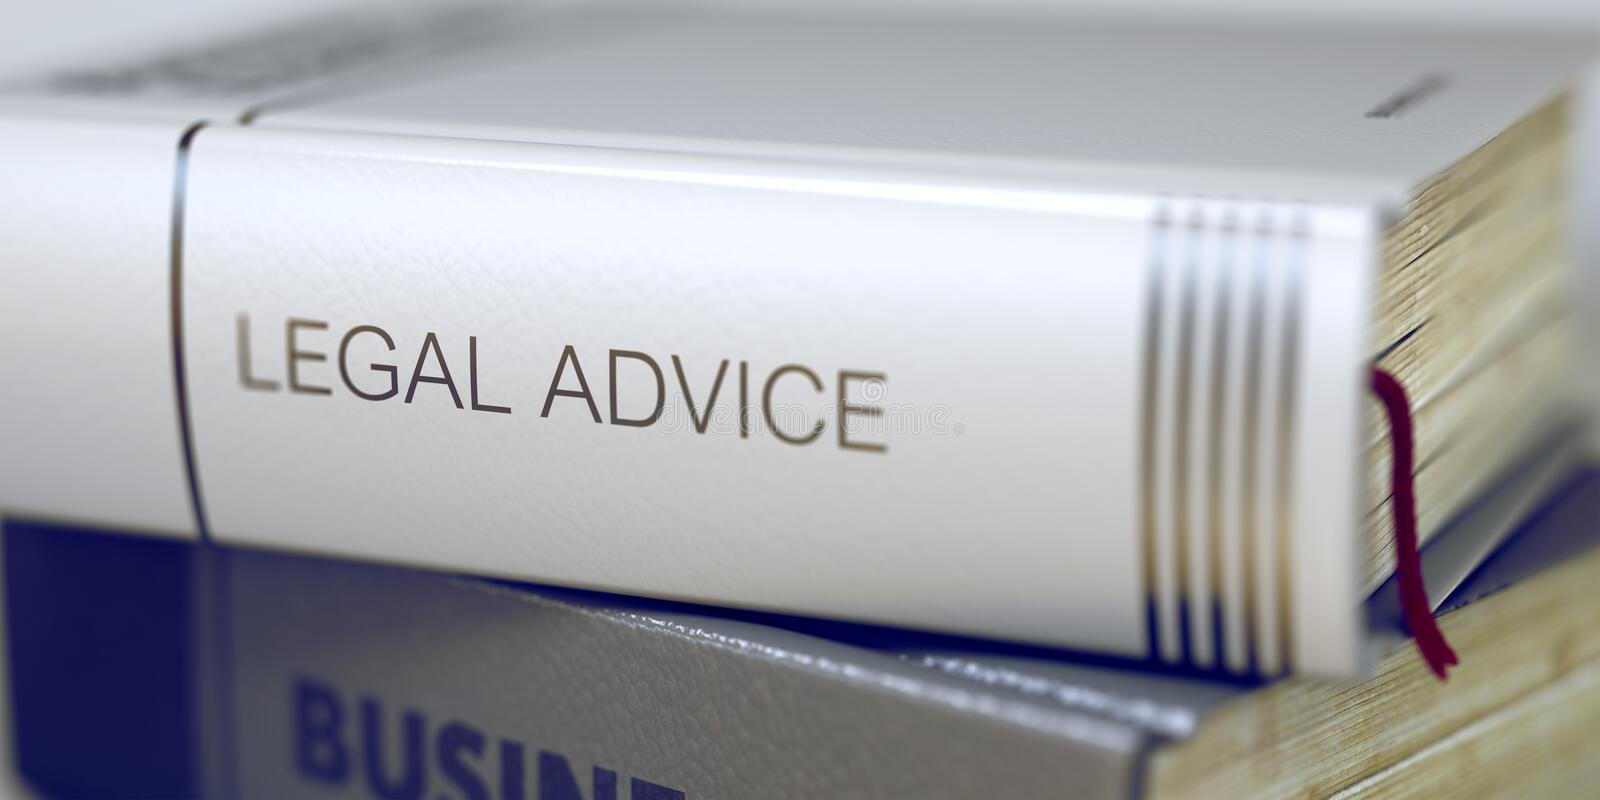 Legal Advice - Book Title. 3D. Legal Advice - Leather-bound Book in the Stack. Closeup. Business Concept: Closed Book with Title Legal Advice in Stack, Closeup stock photo